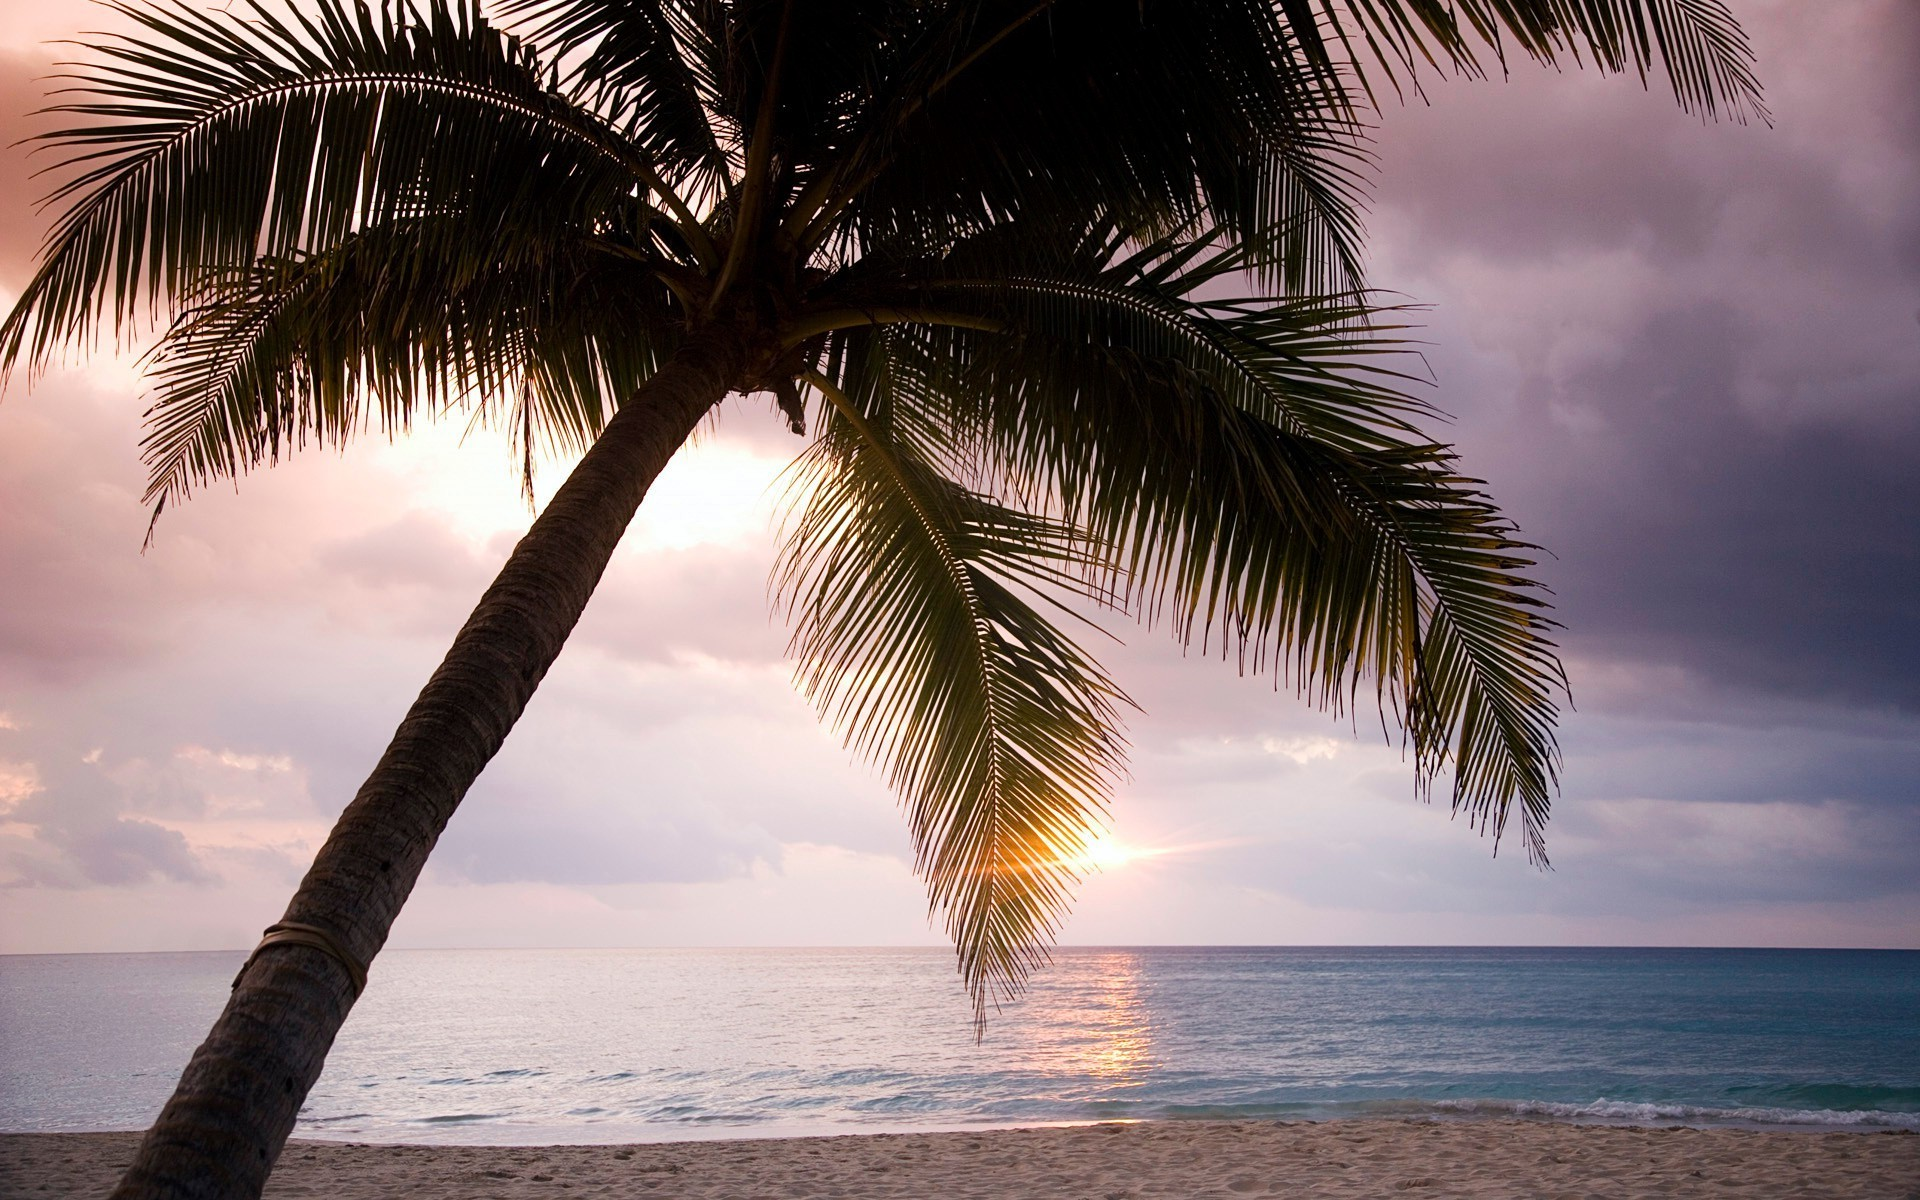 The palm tree on the beach in the tropics